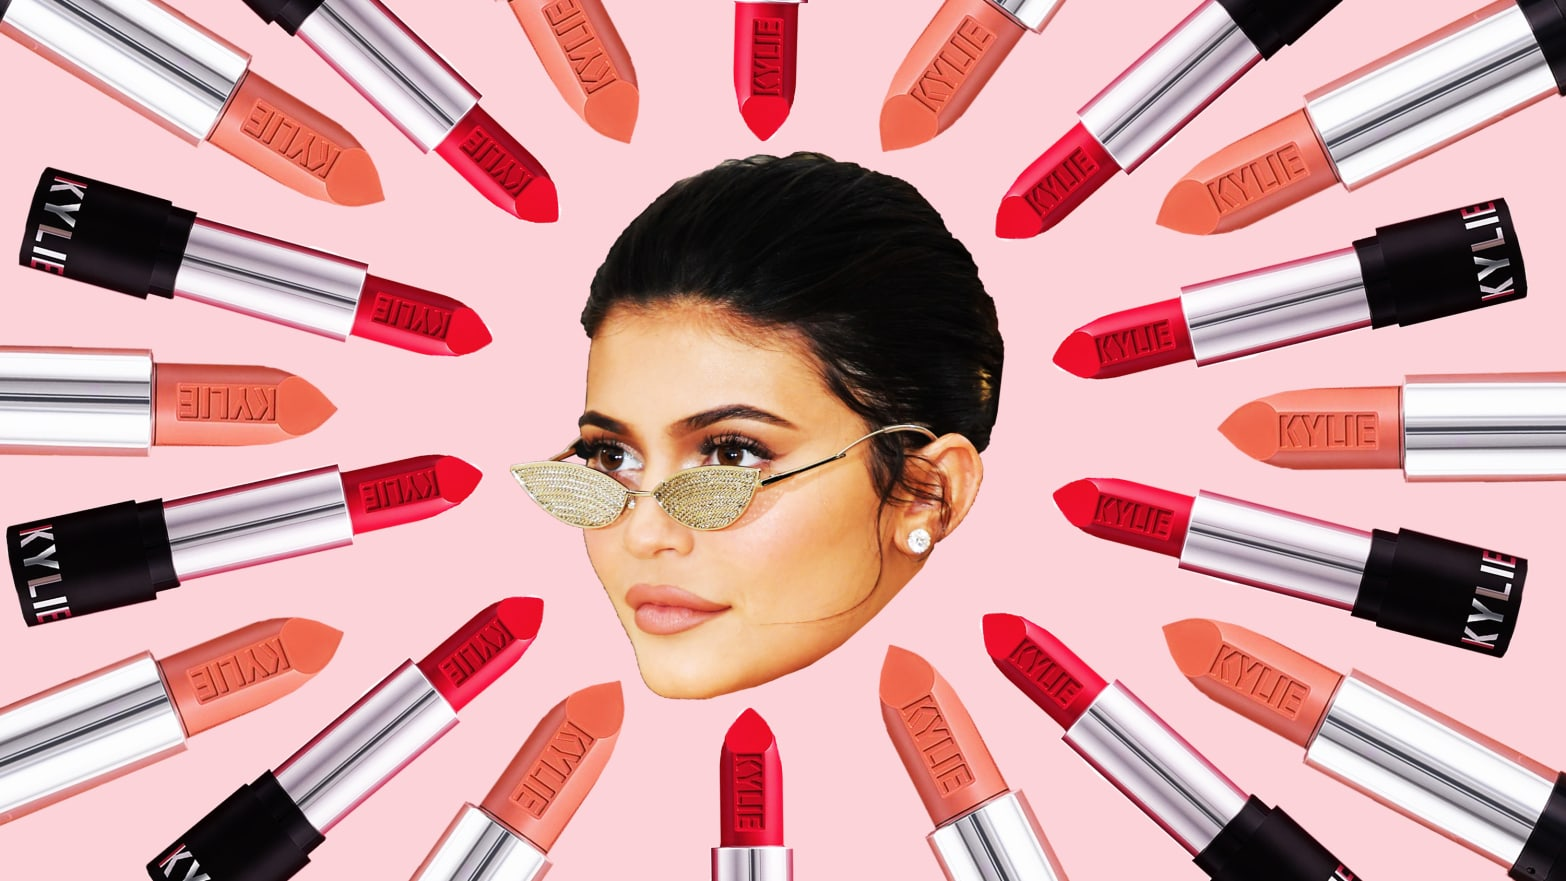 Kylie Jenner Set To Sell Cosmetics Company For About $600m